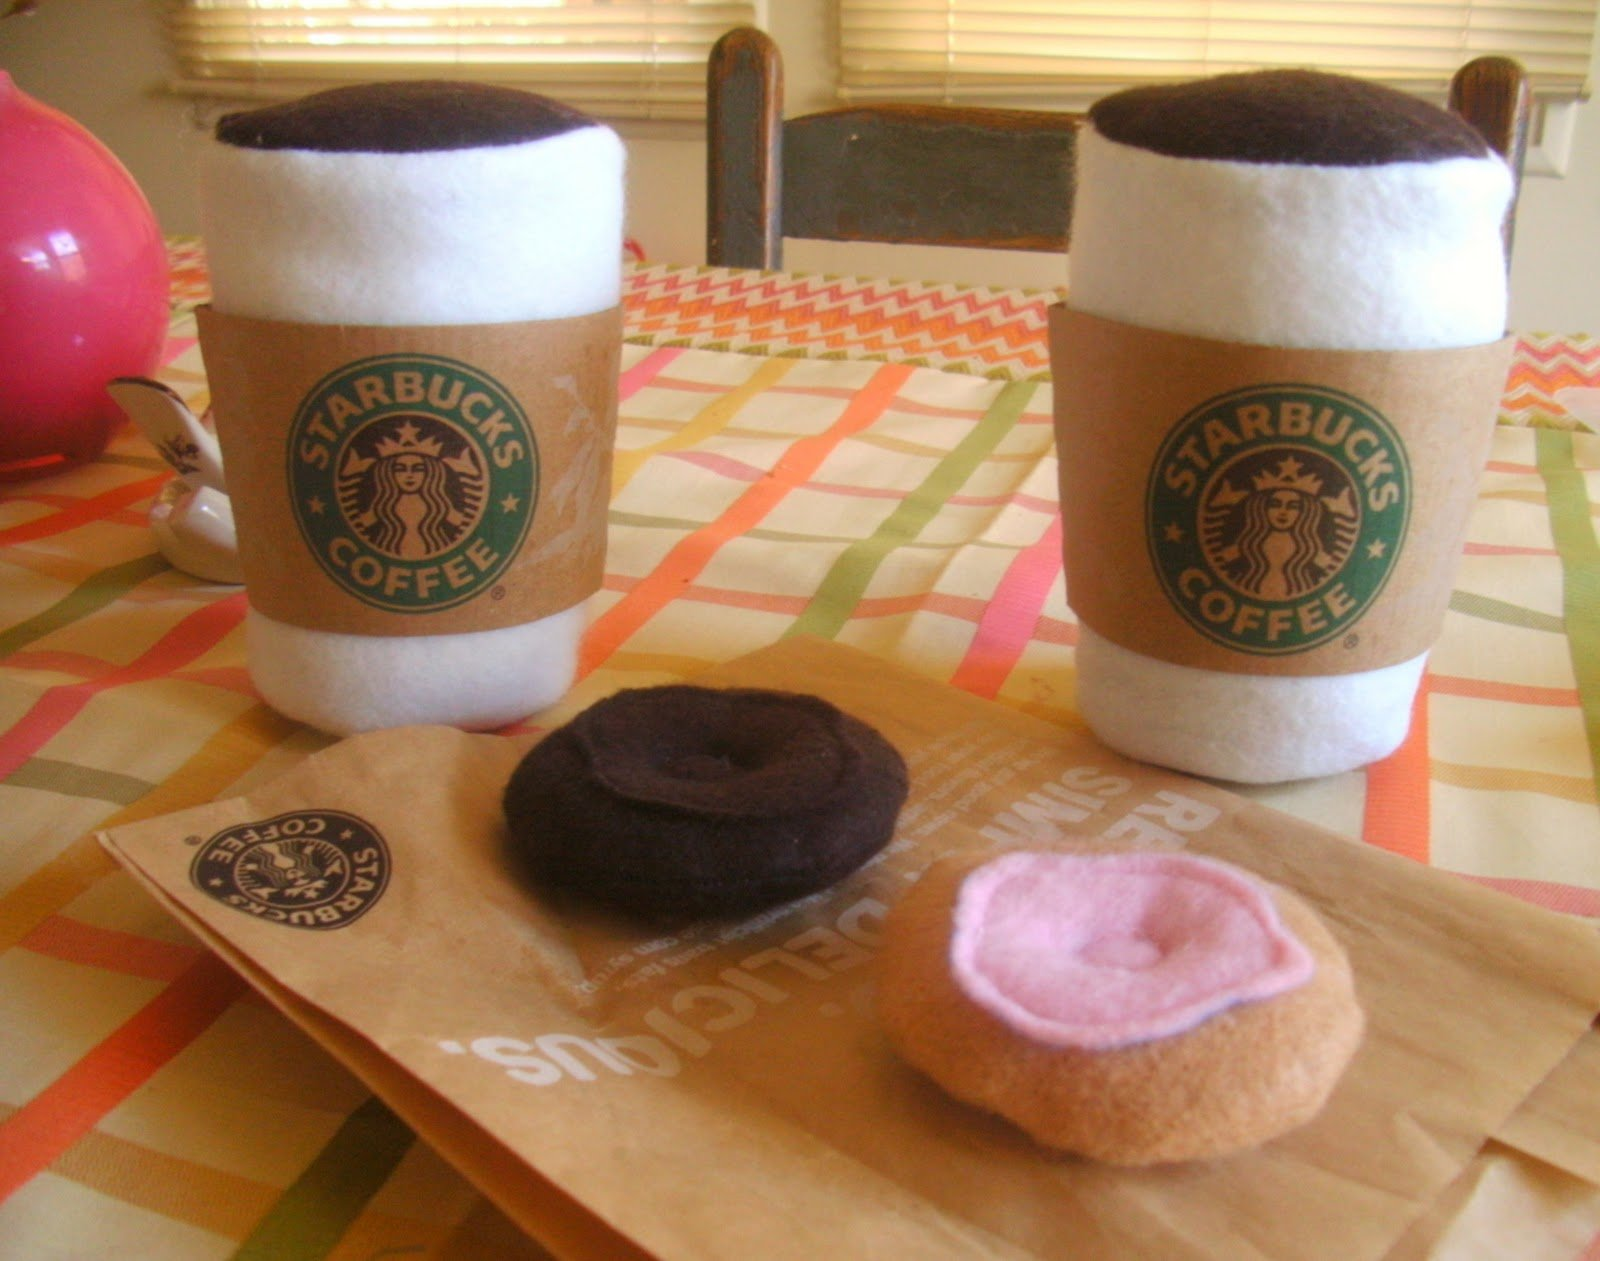 Coffee for two {year olds} – Starbucks Felt Playset